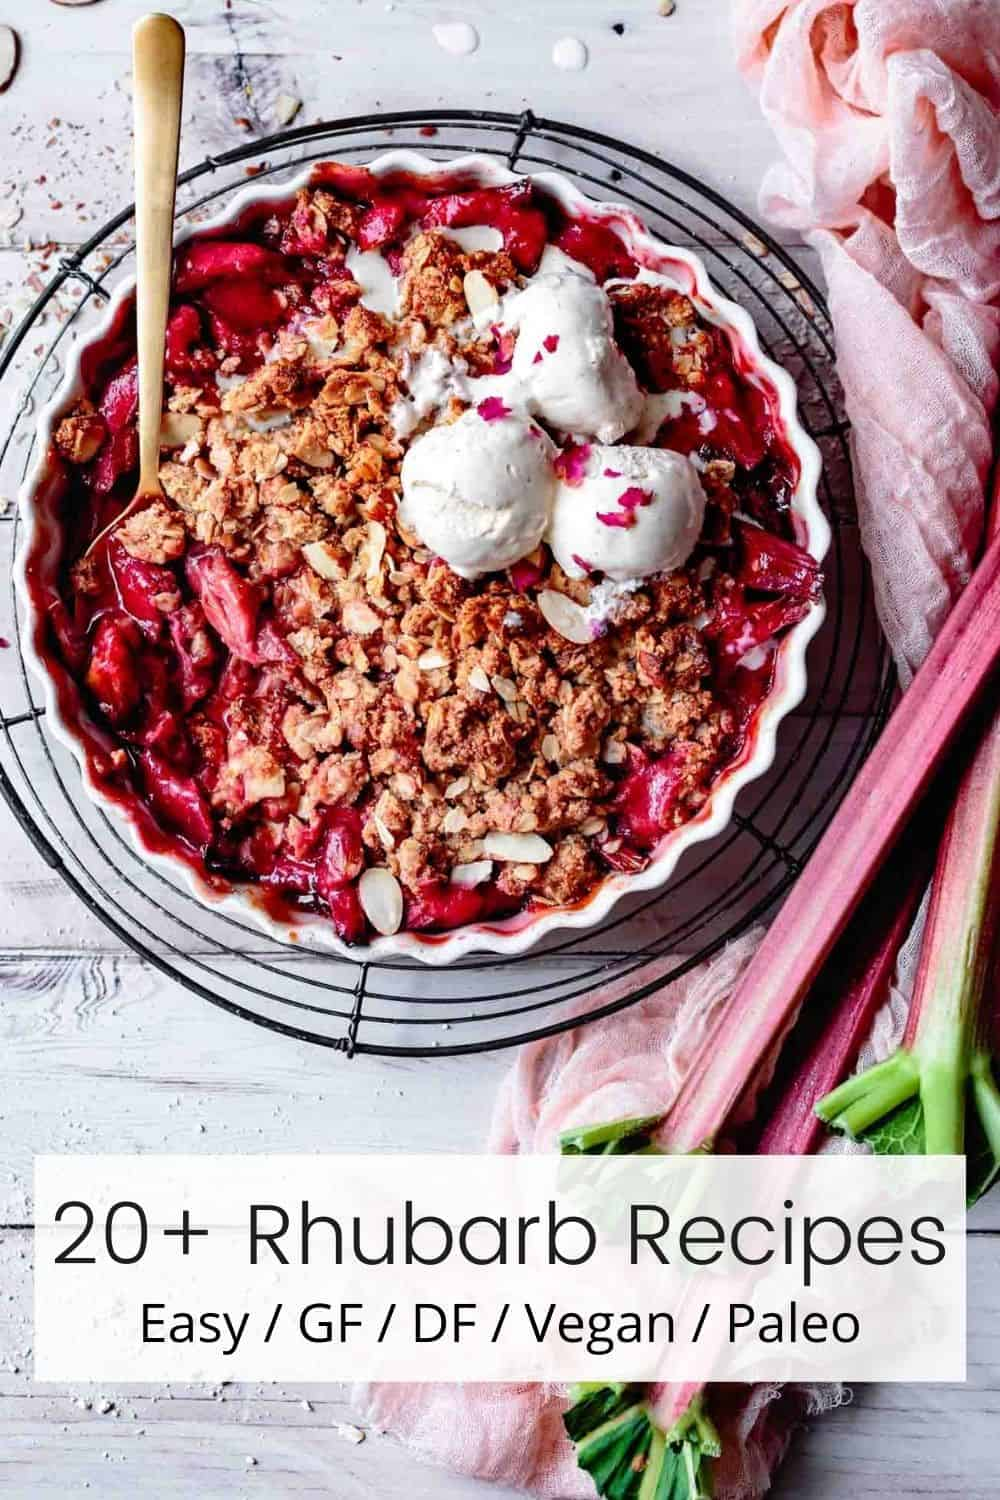 rhubarb recipe round-up image for pinterest with text